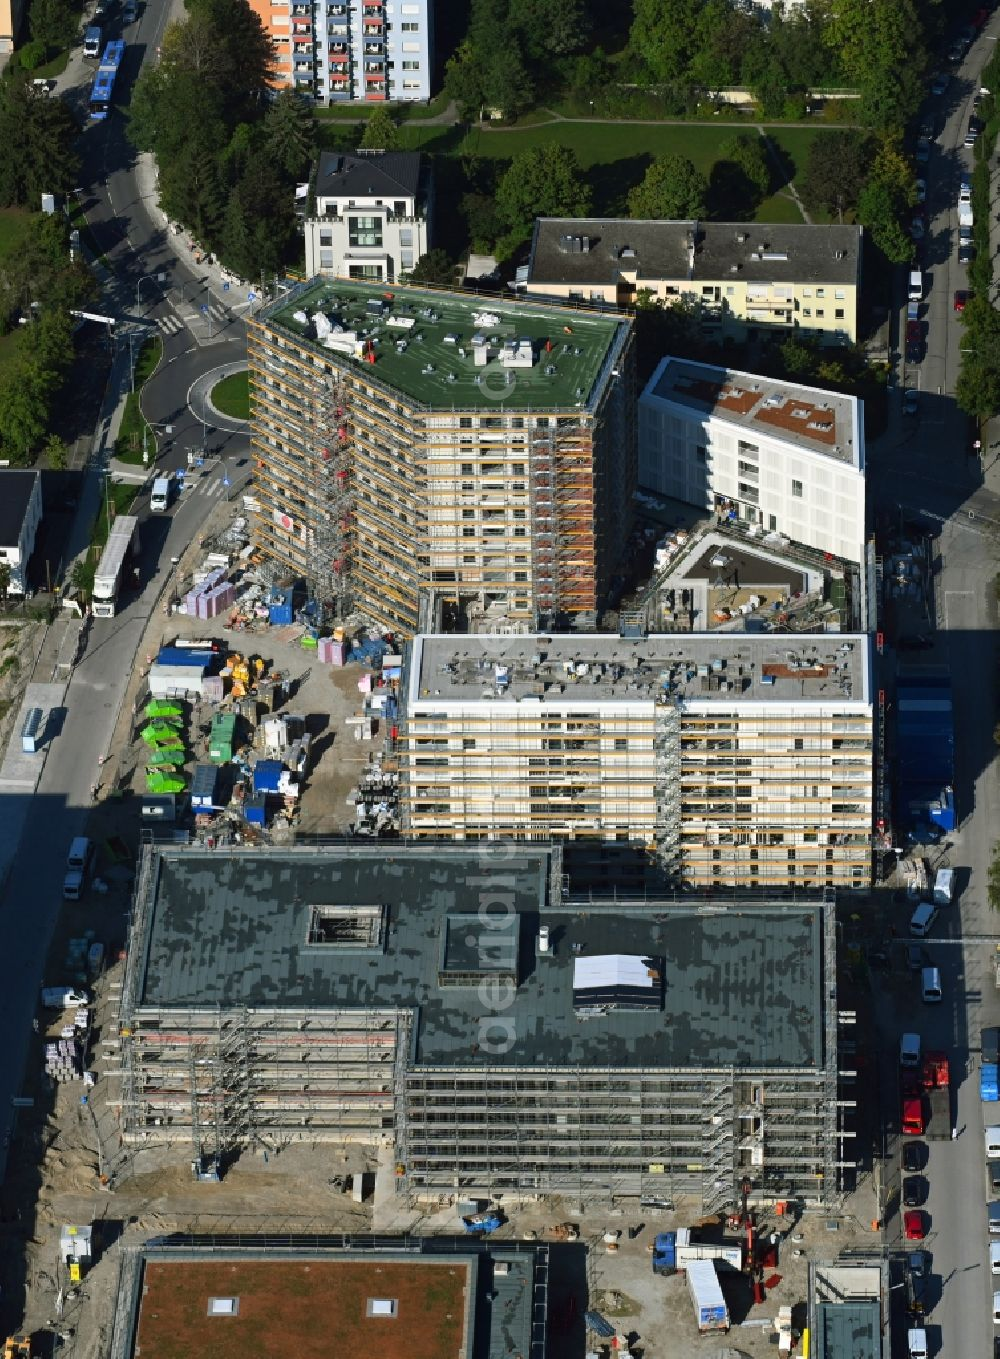 München from above - Construction site to build a new multi-family residential complex of MuenchenBau GmbH on Berduxstrasse in the district Pasing-Obermenzing in Munich in the state Bavaria, Germany